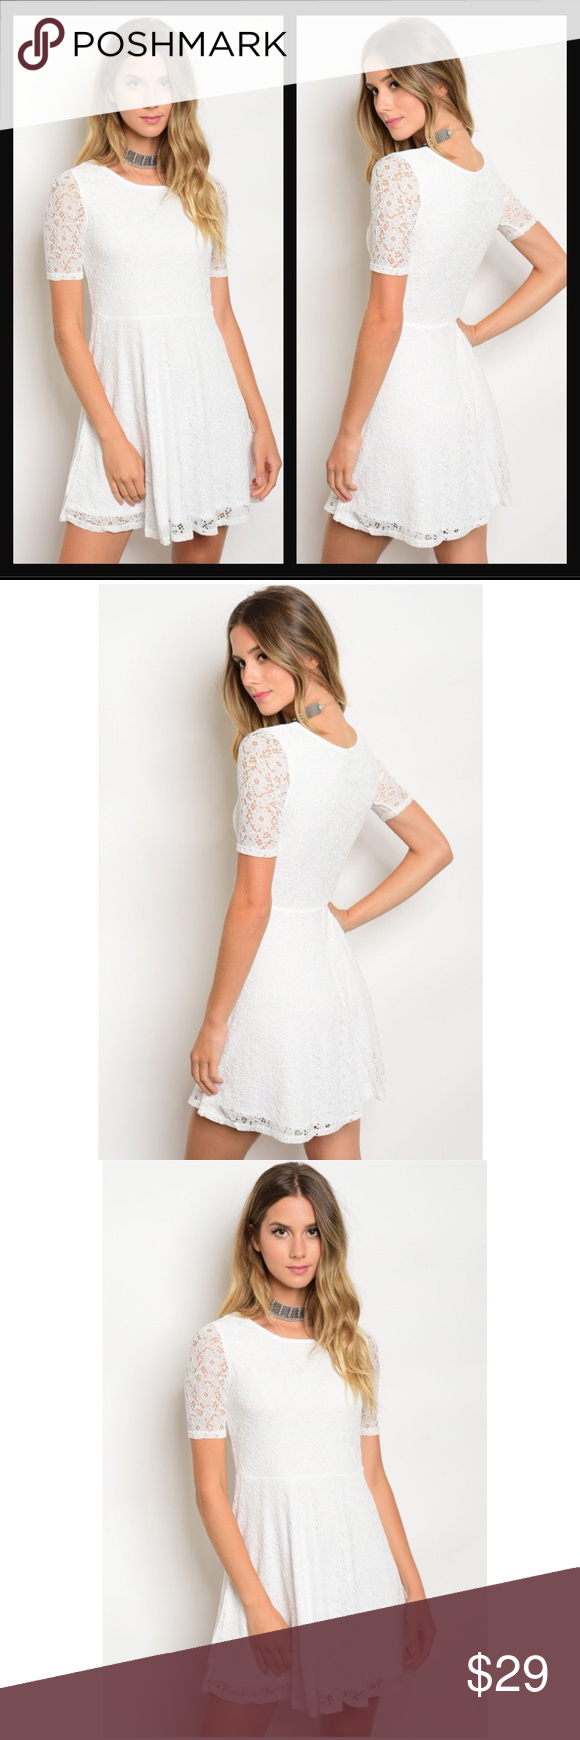 White Lace Crochet Skater Dress Boutique (With images